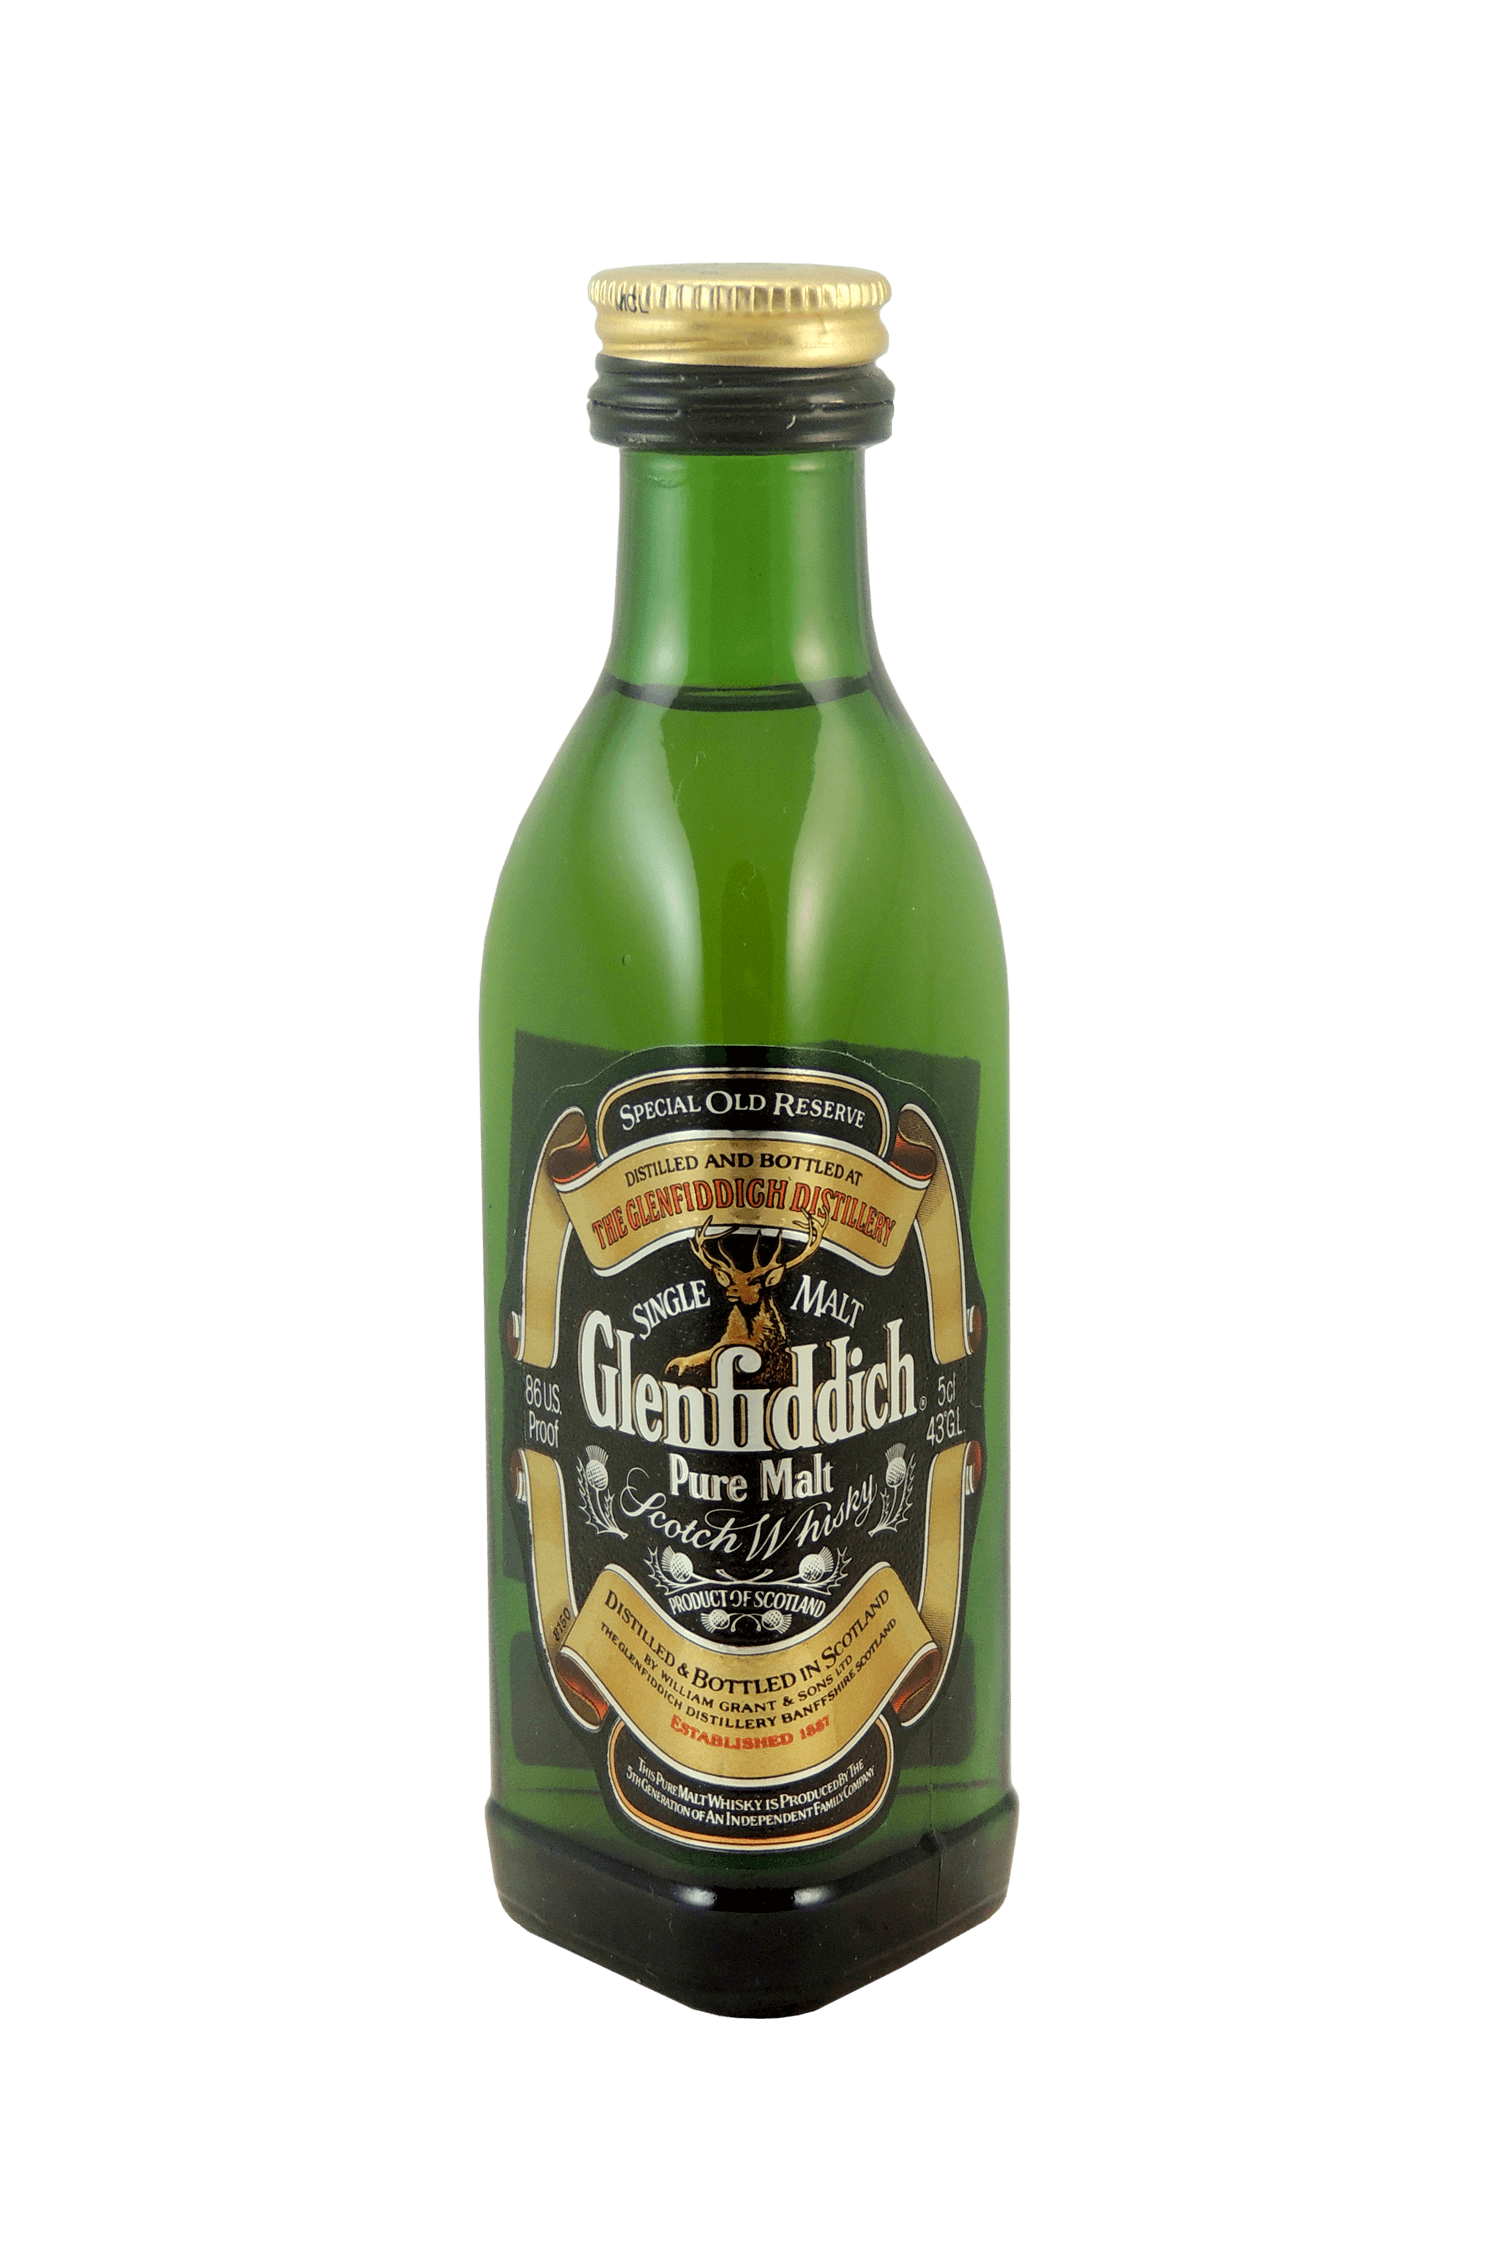 Glenfiddich Pure Malt Scotch Whisky